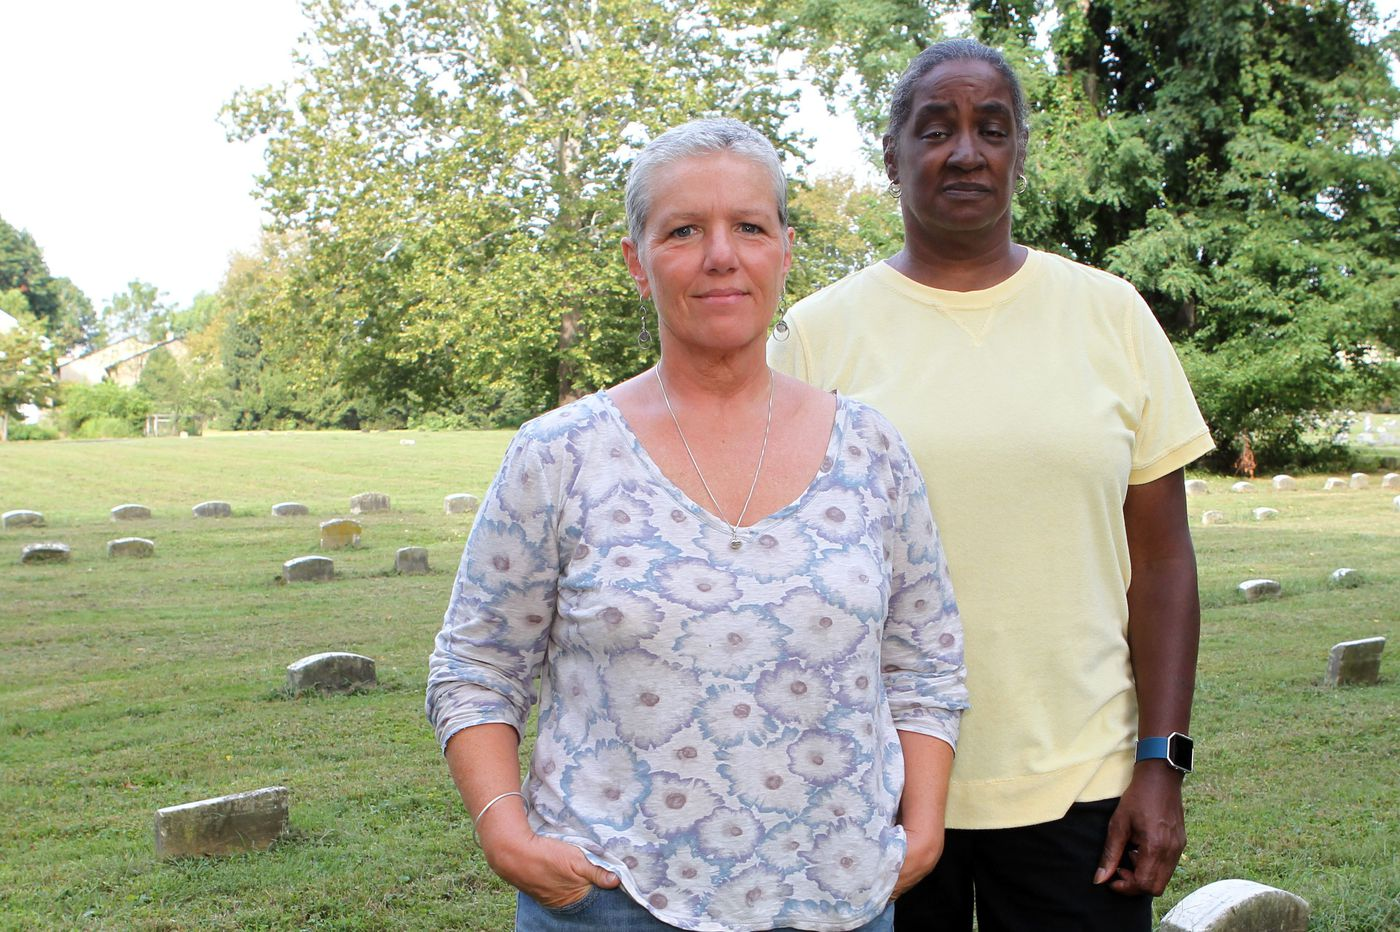 Middletown Friends to recognize slaves in unmarked graves and their role in Quaker history